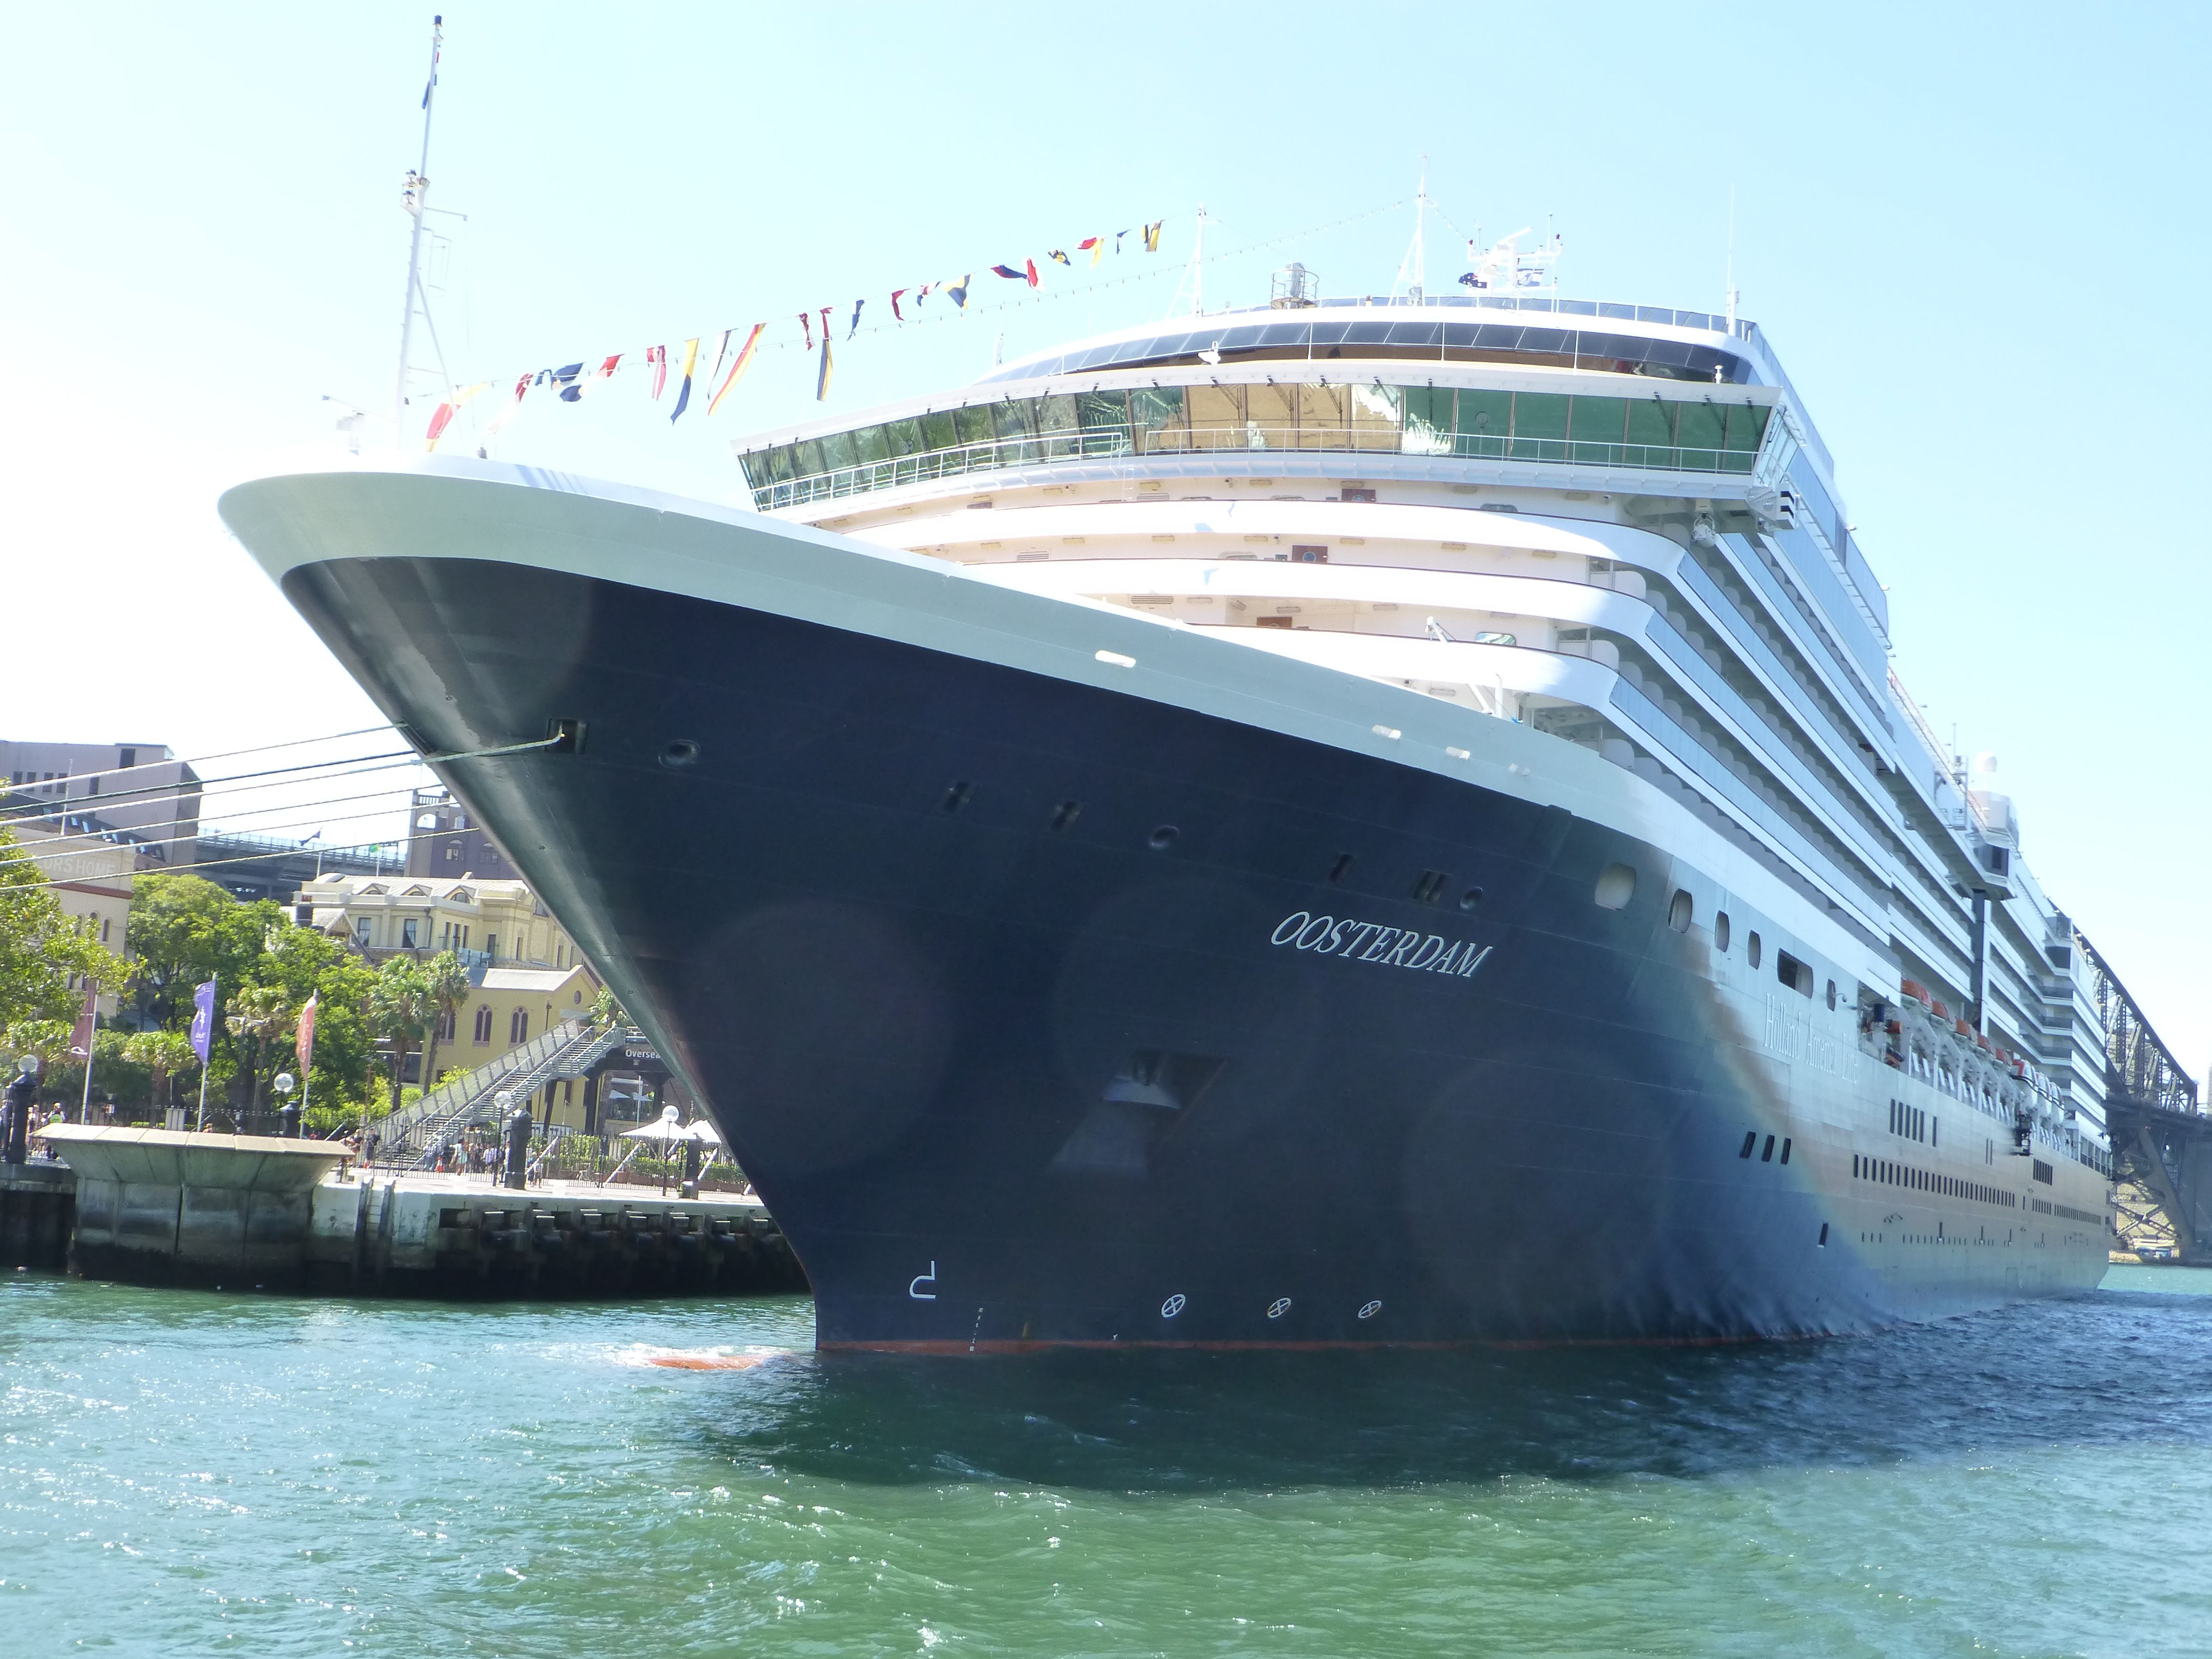 Oosterdam of Holland America Line, at Circular Quay in